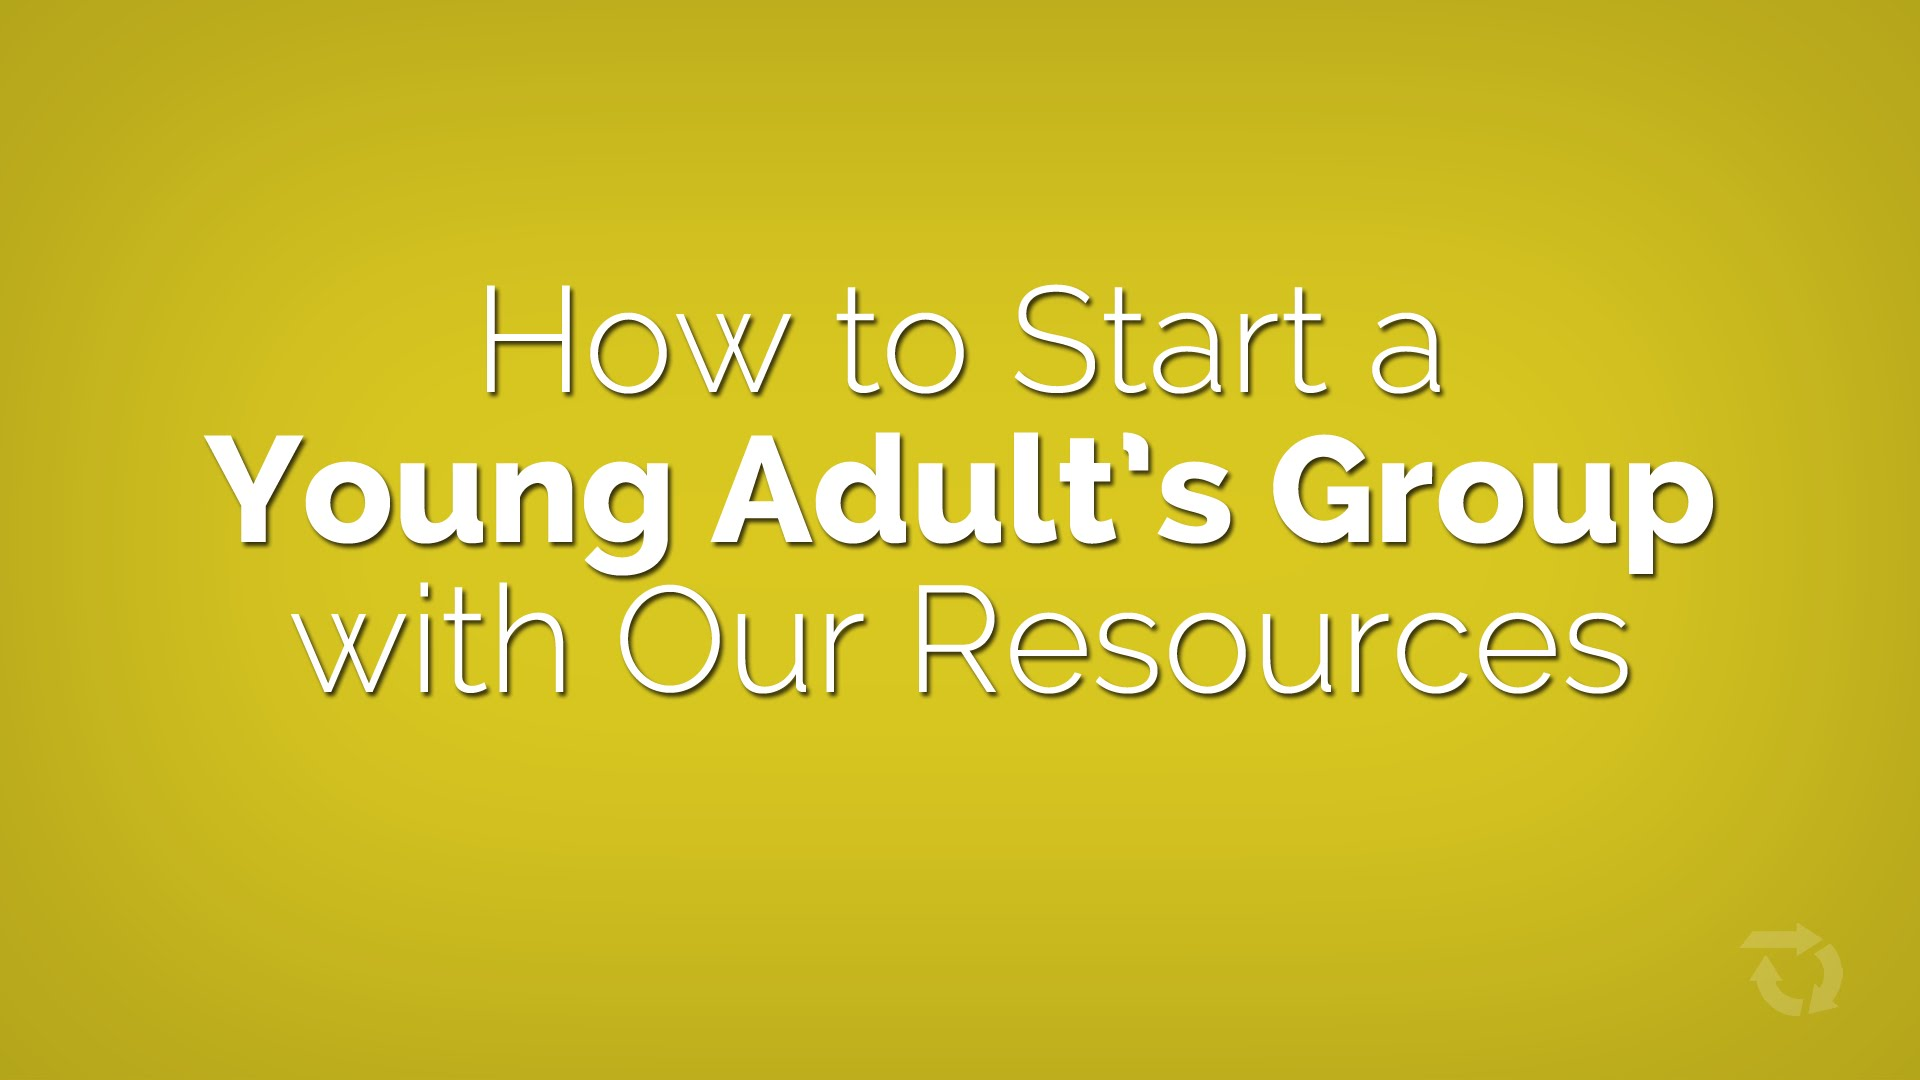 How to Start a Young Adults Group